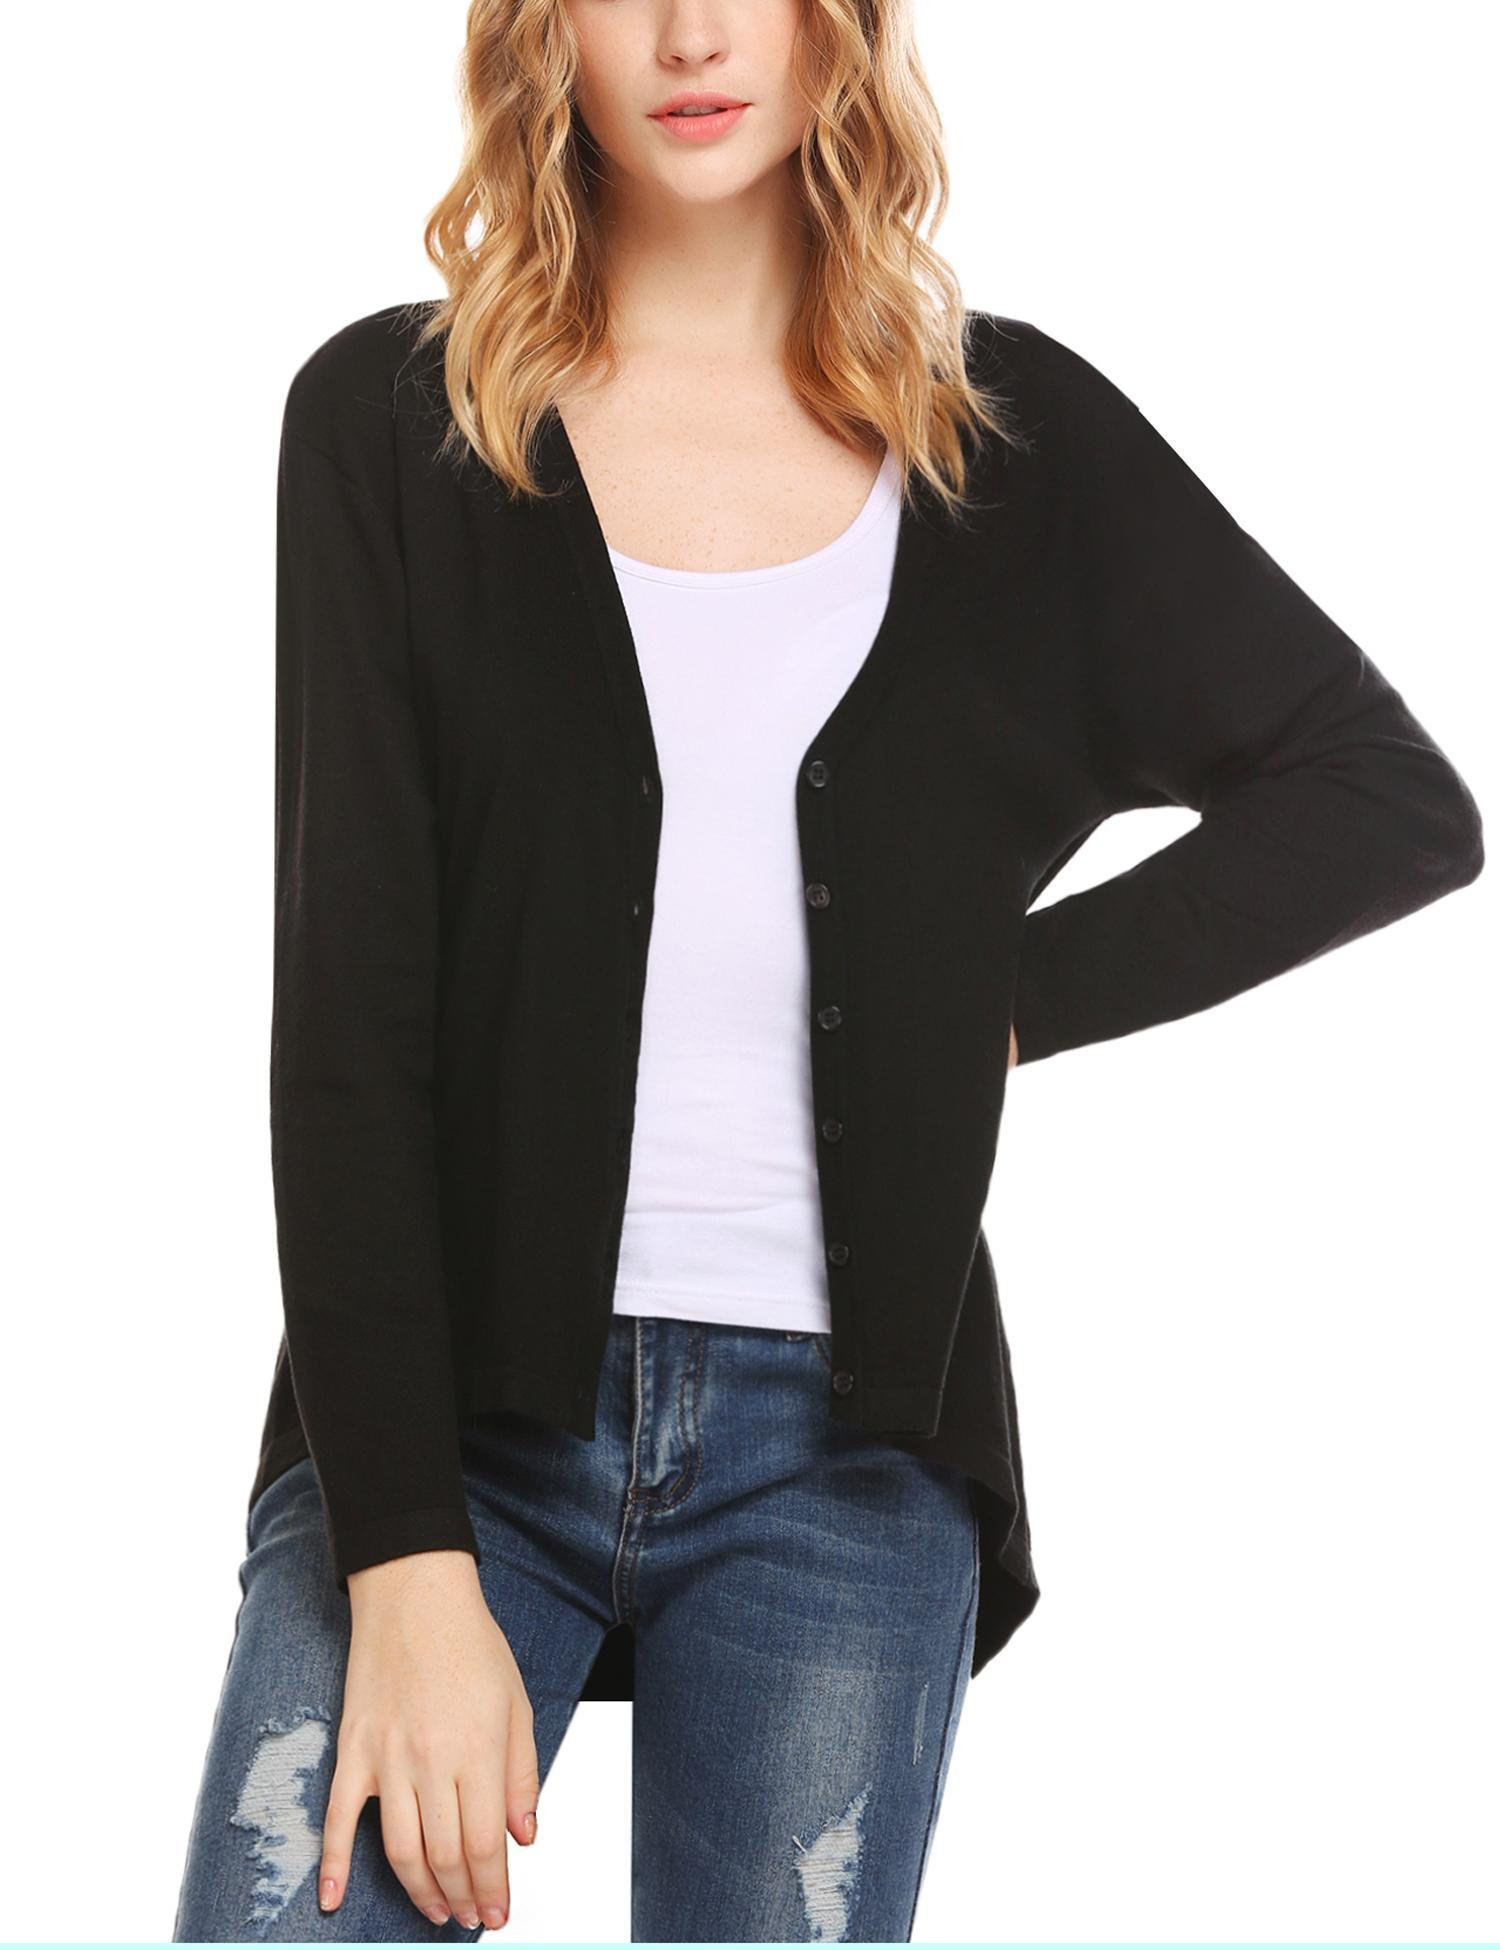 Zeagoo Women's Comfy Button Down Long Sleeve Basic Knitted Cardigan Sweater Business Casual Loose 2X Cardigan (Black L)